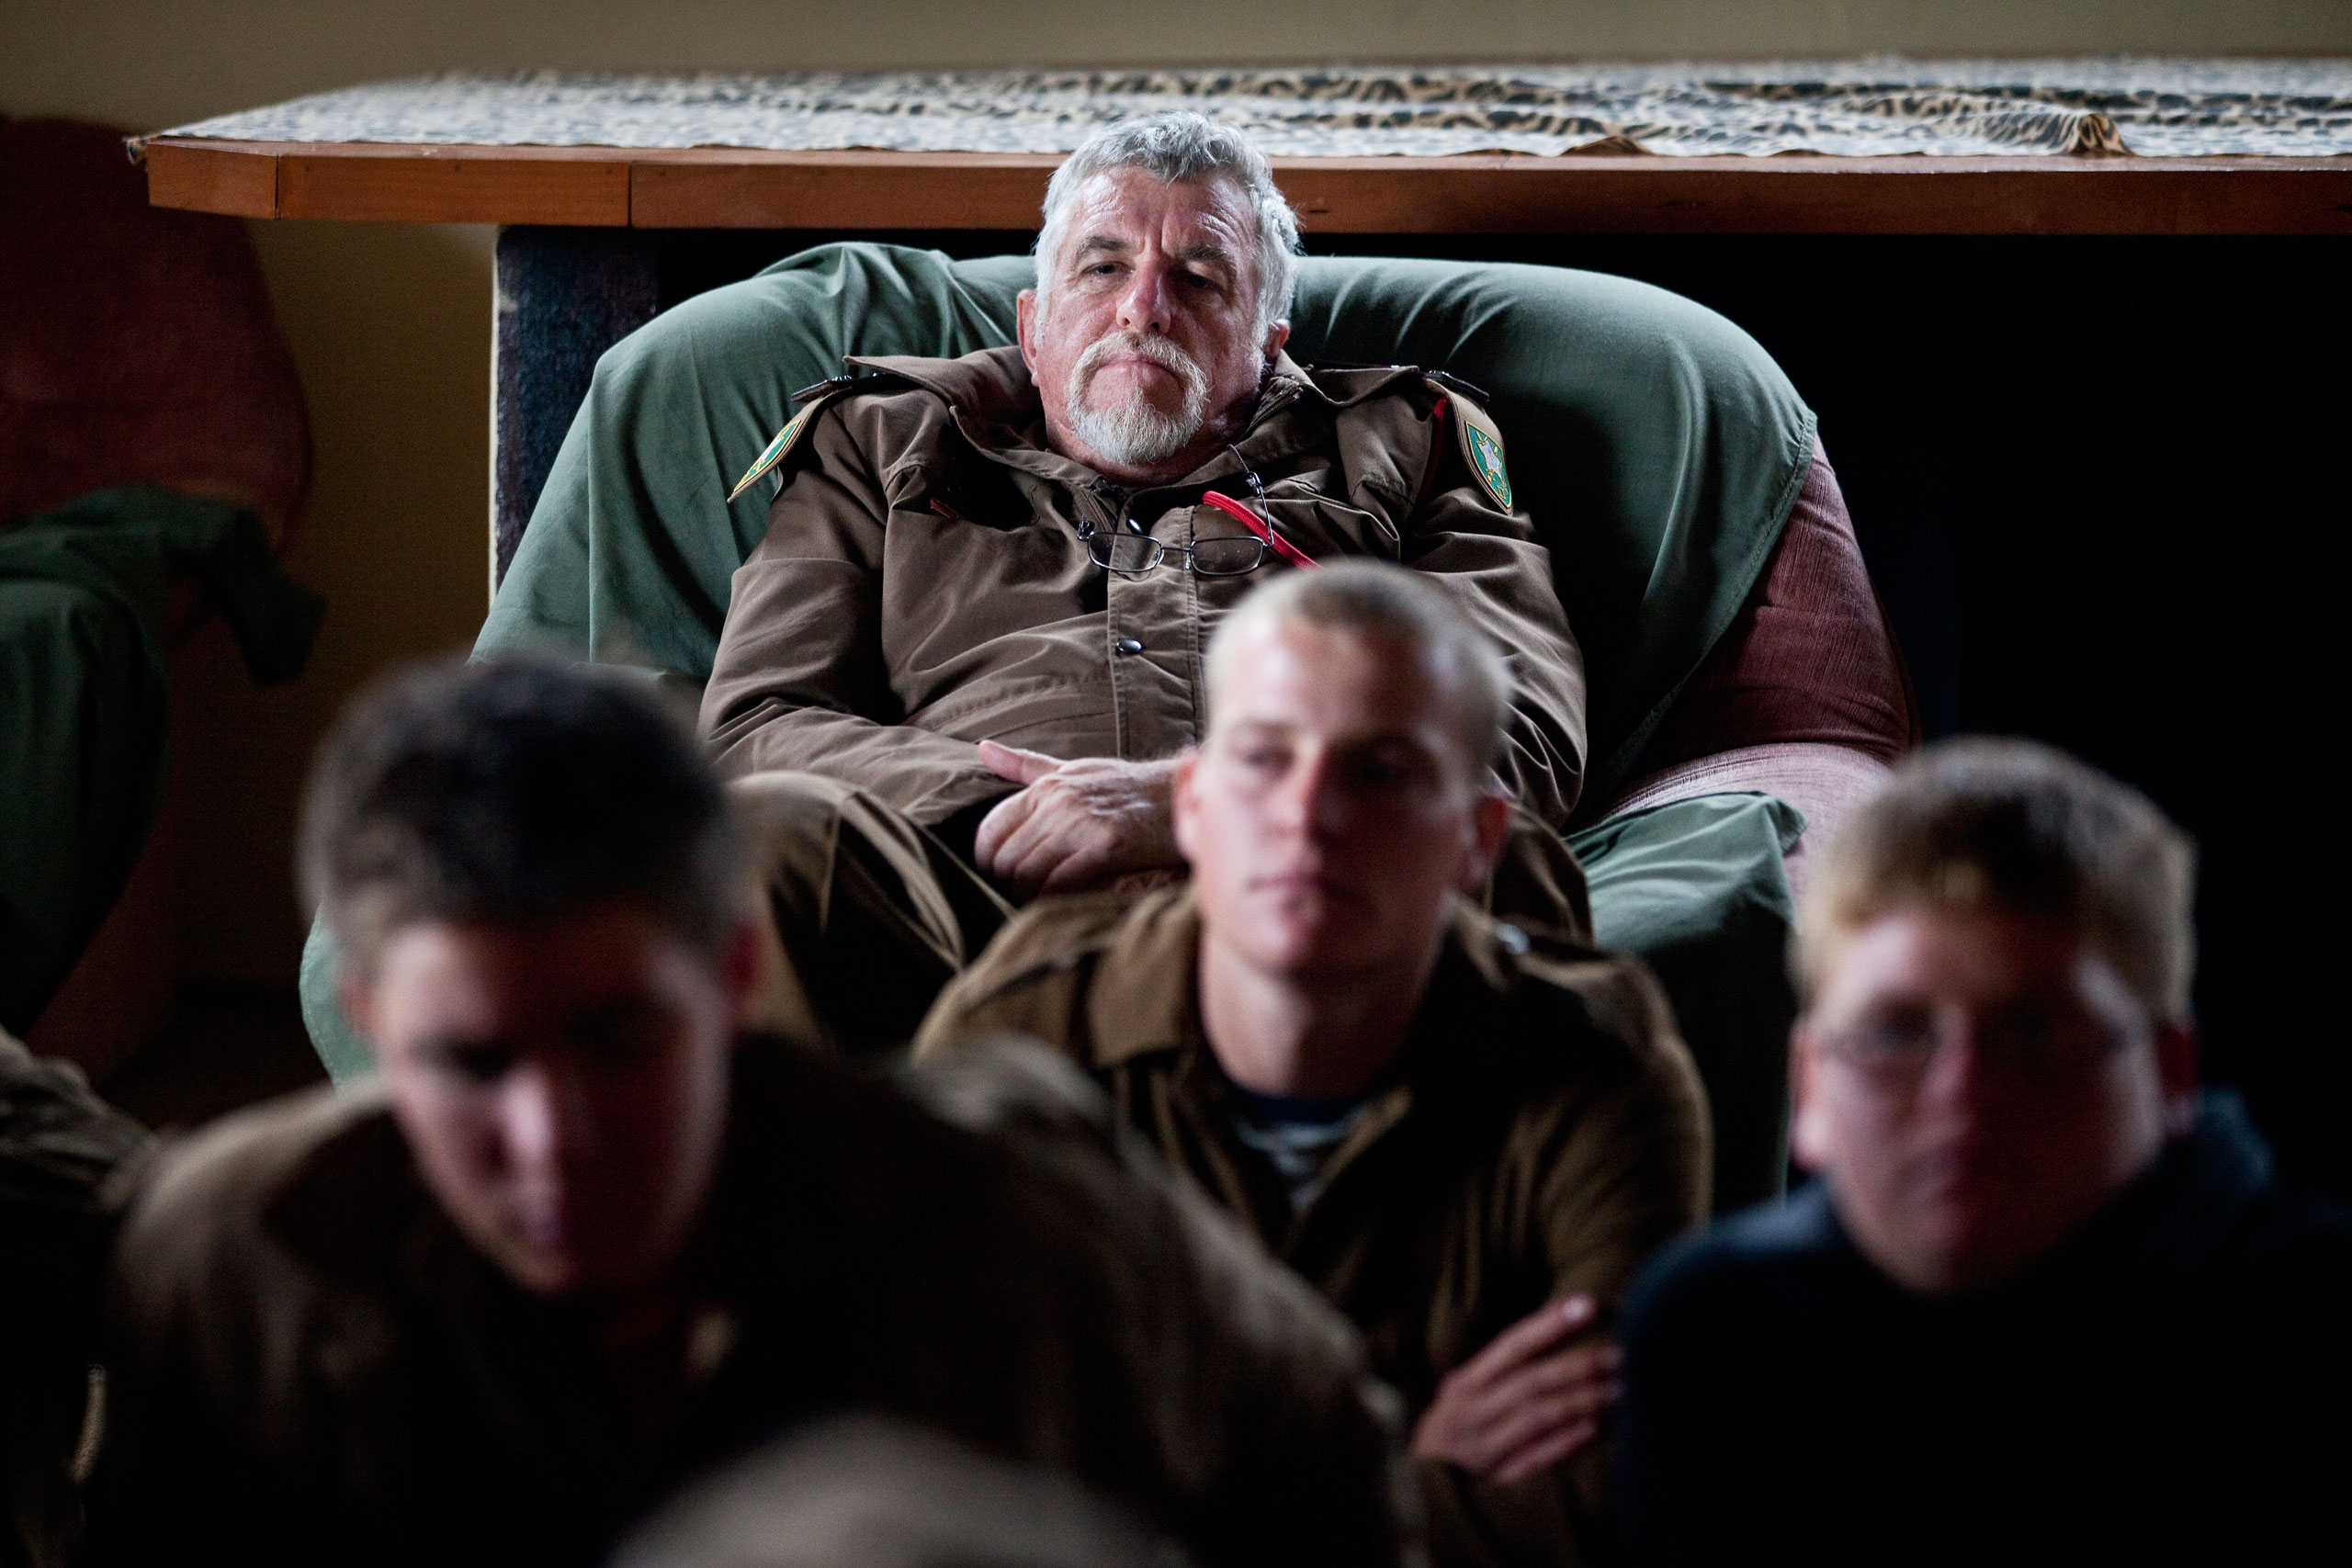 Self-proclaimed Colonel Franz Jooste, the 57-year old leader of the camp, claims the Kommandokorps has trained between 1500 and 1800 young white Afrikaners over the past 11 years.